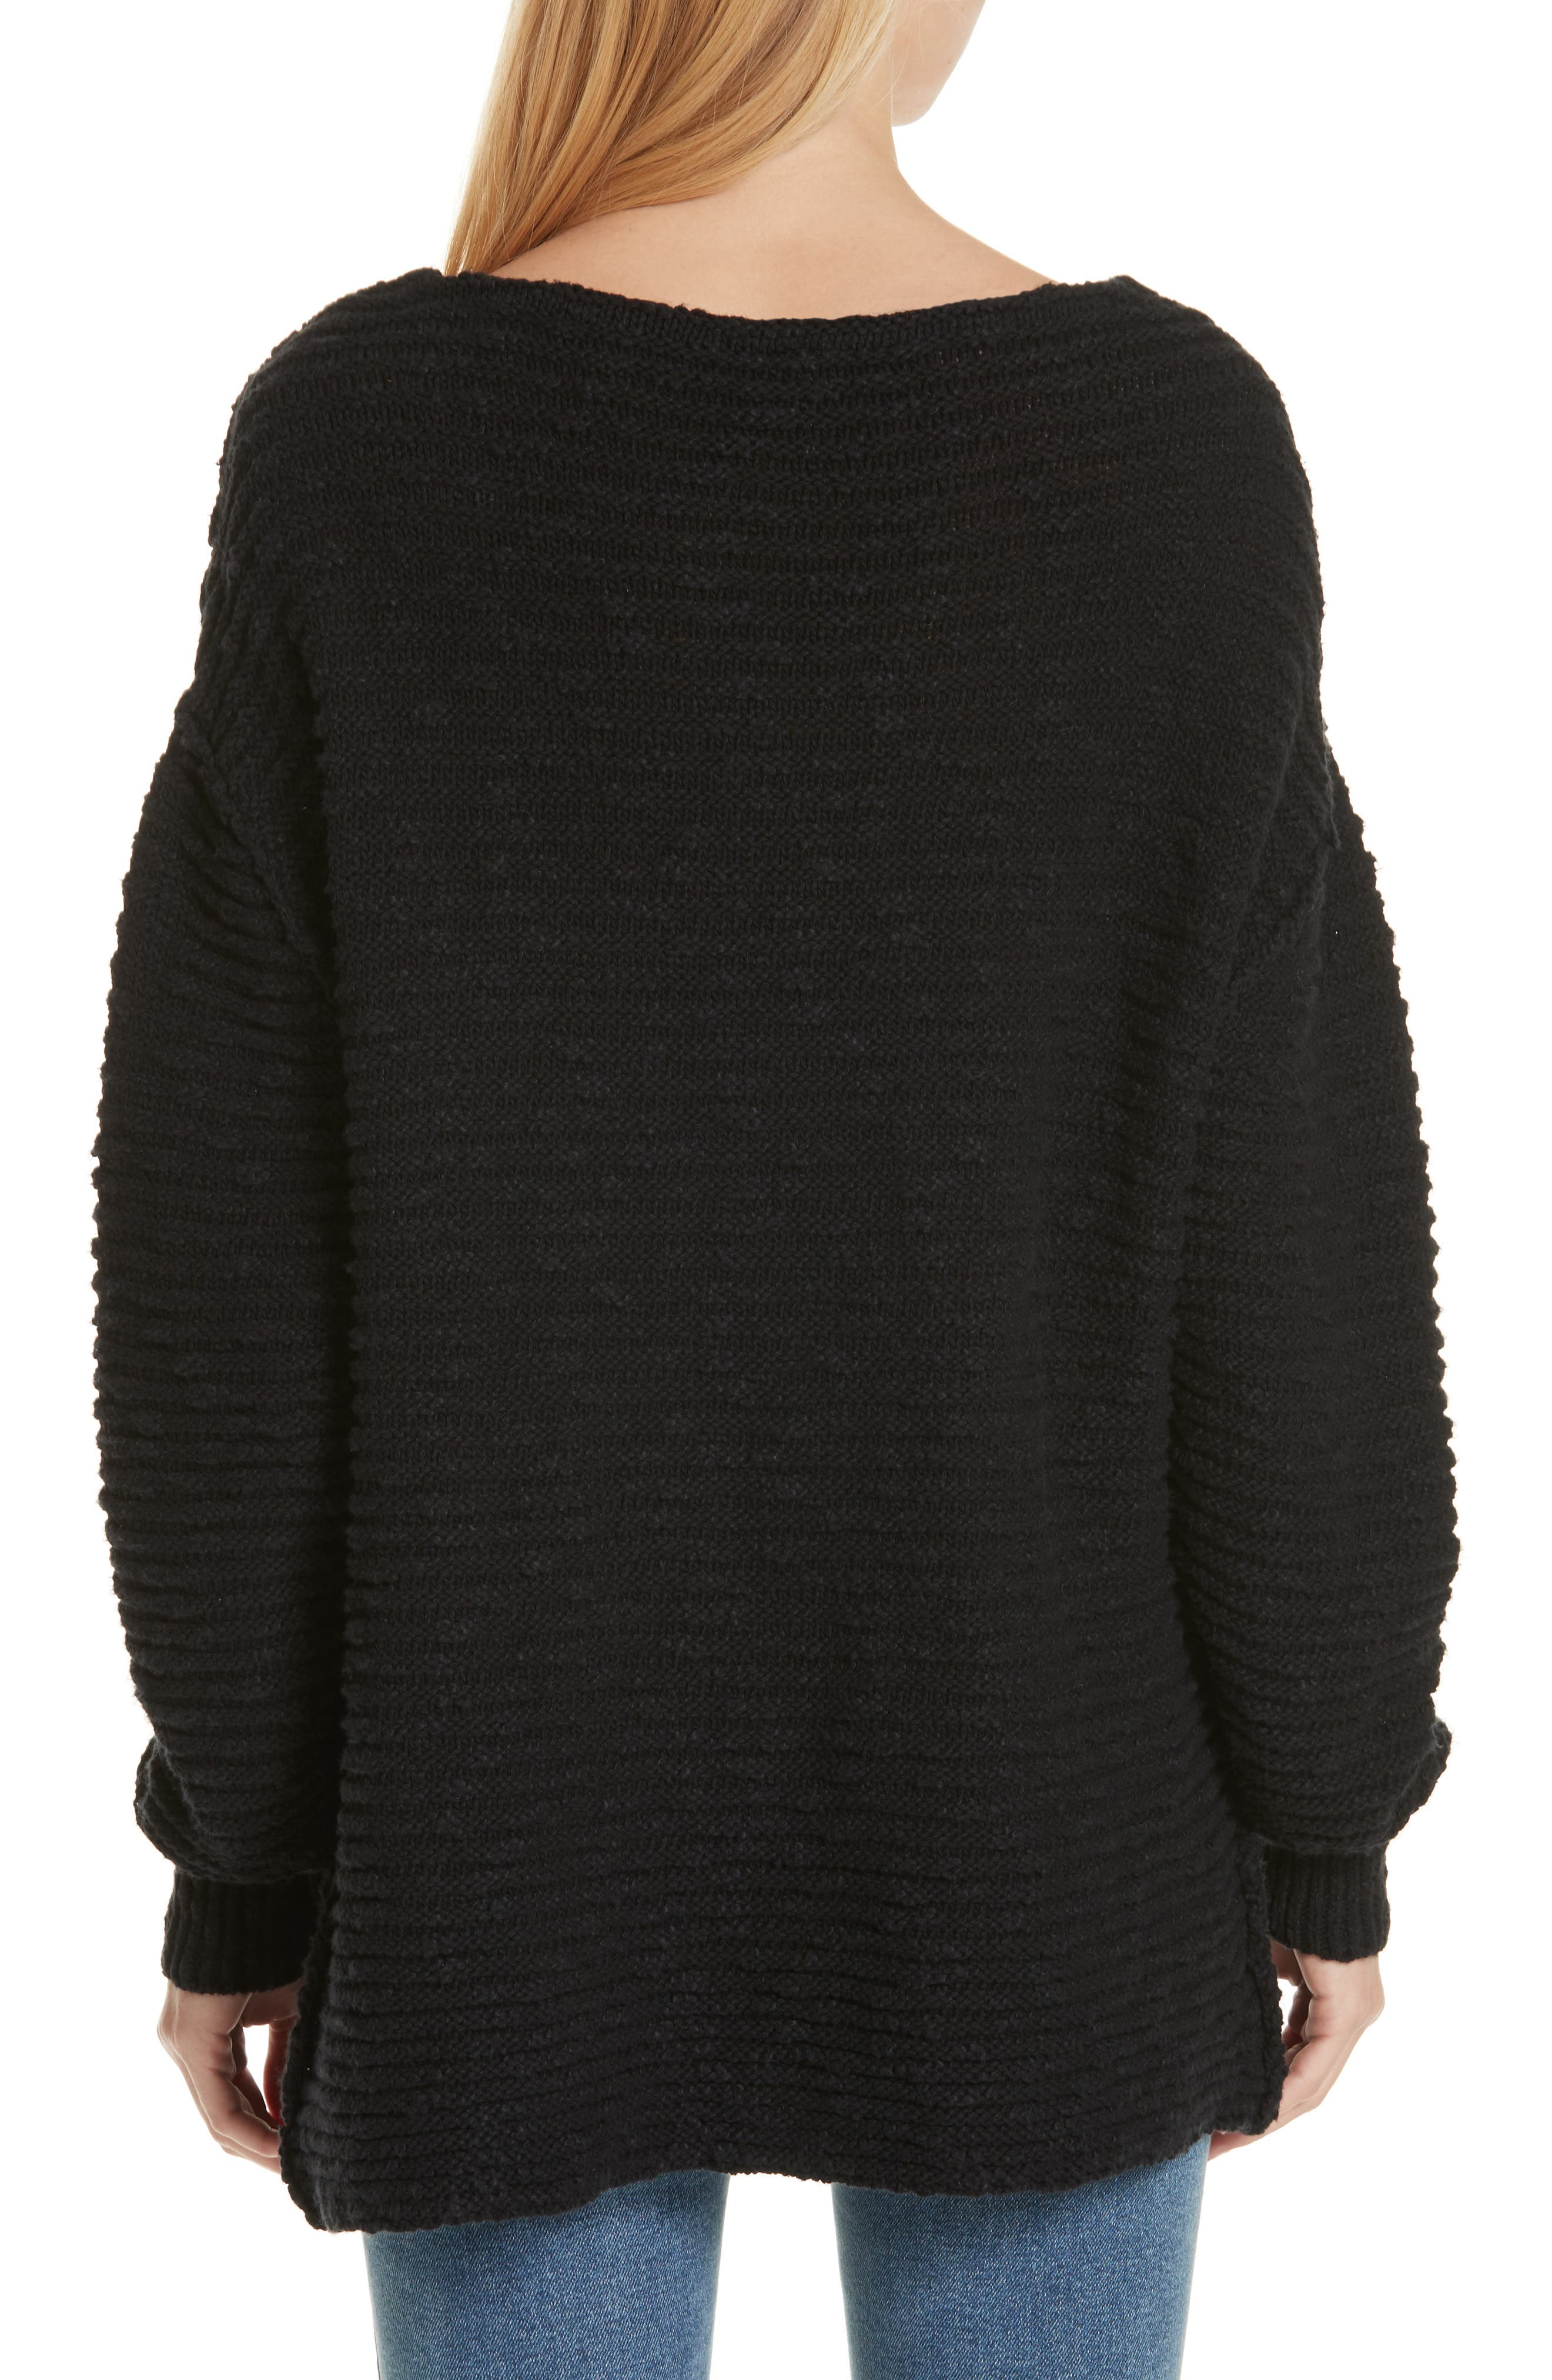 Menace Solid Tunic Sweater,                             Alternate thumbnail 2, color,                             001